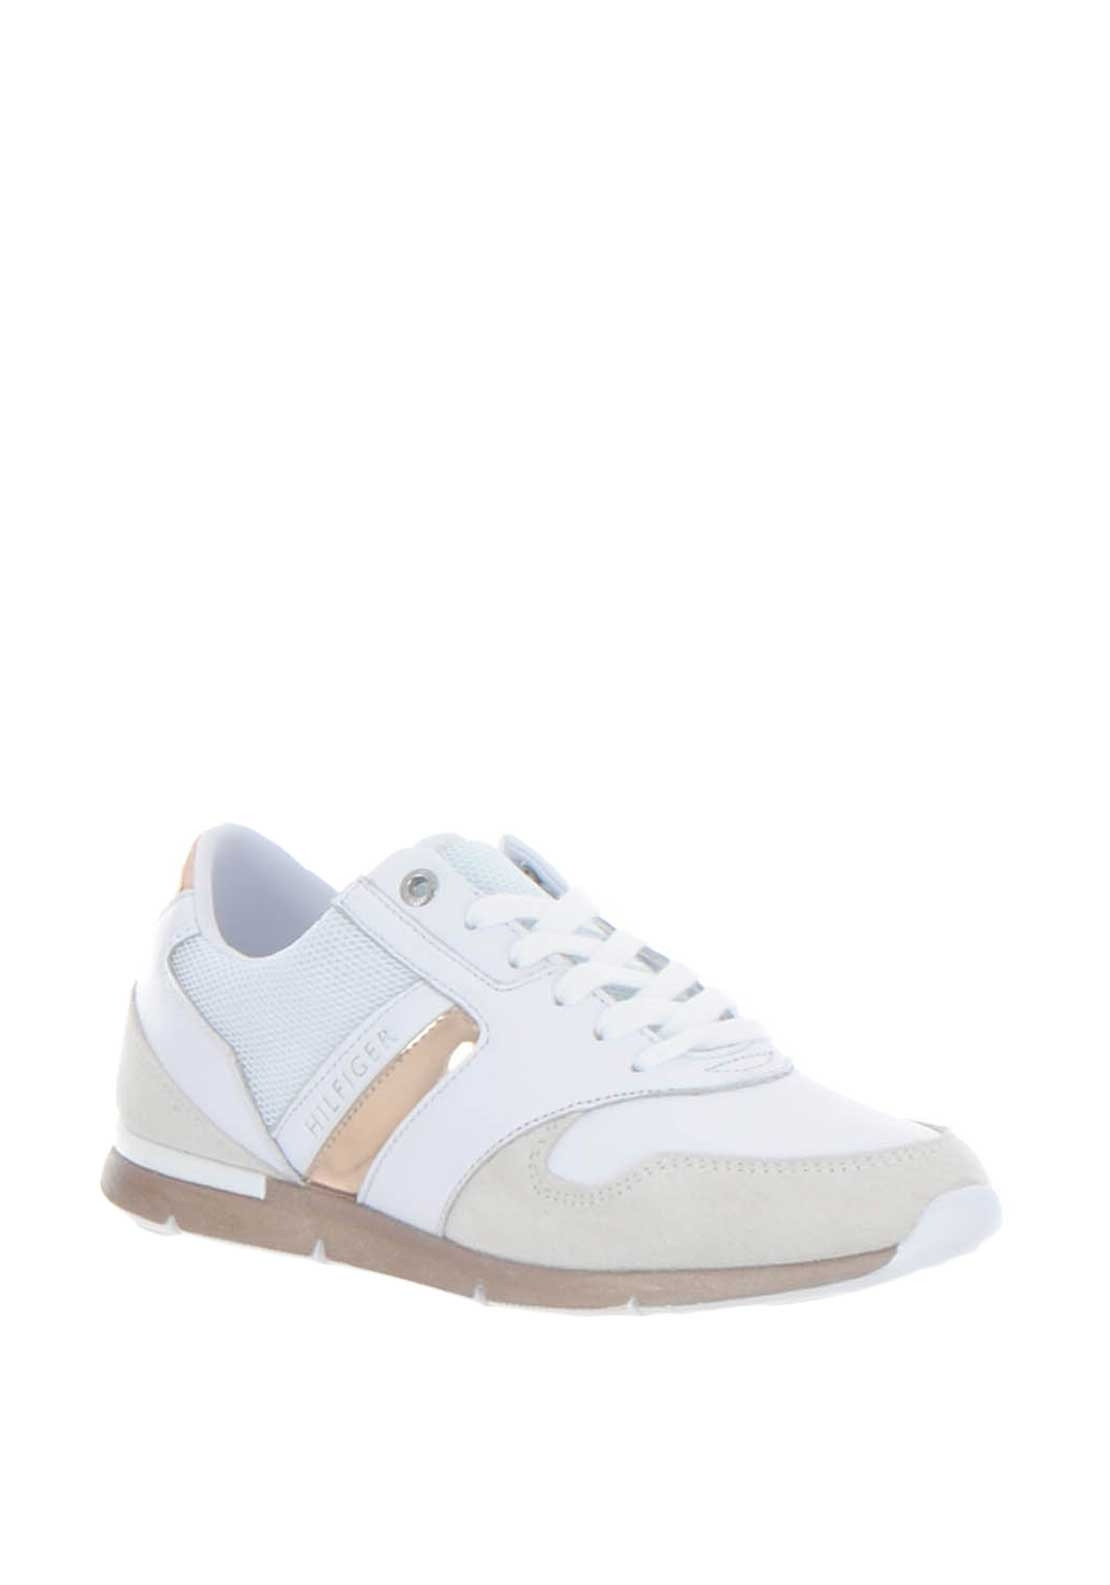 21a8d0992069ca Tommy Hilfiger Womens Iridescent Light Trainers